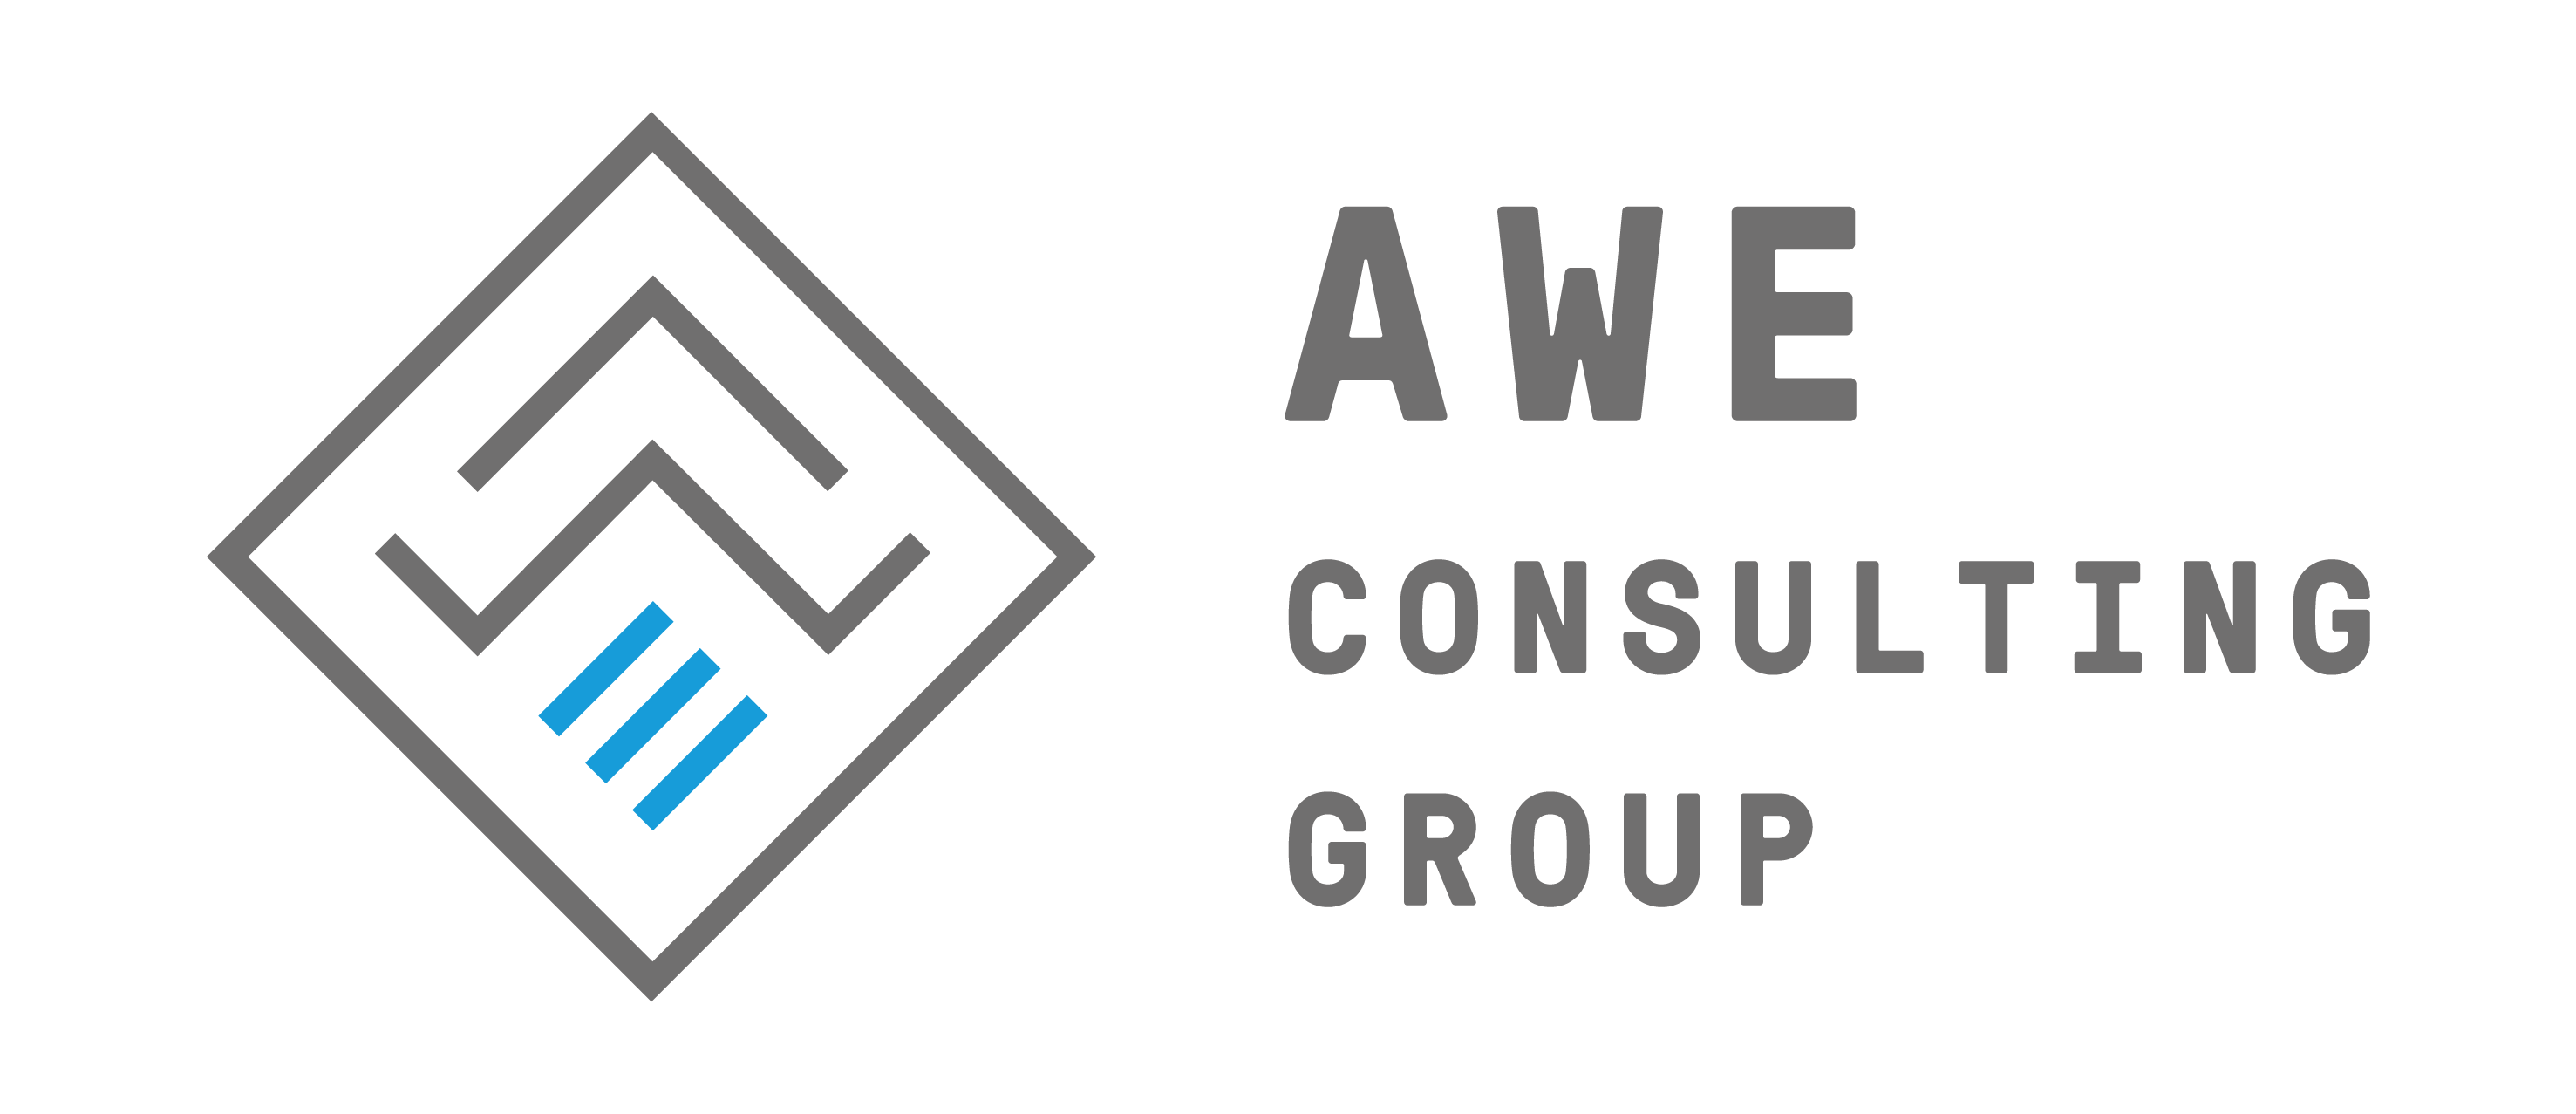 AWE Consulting Group